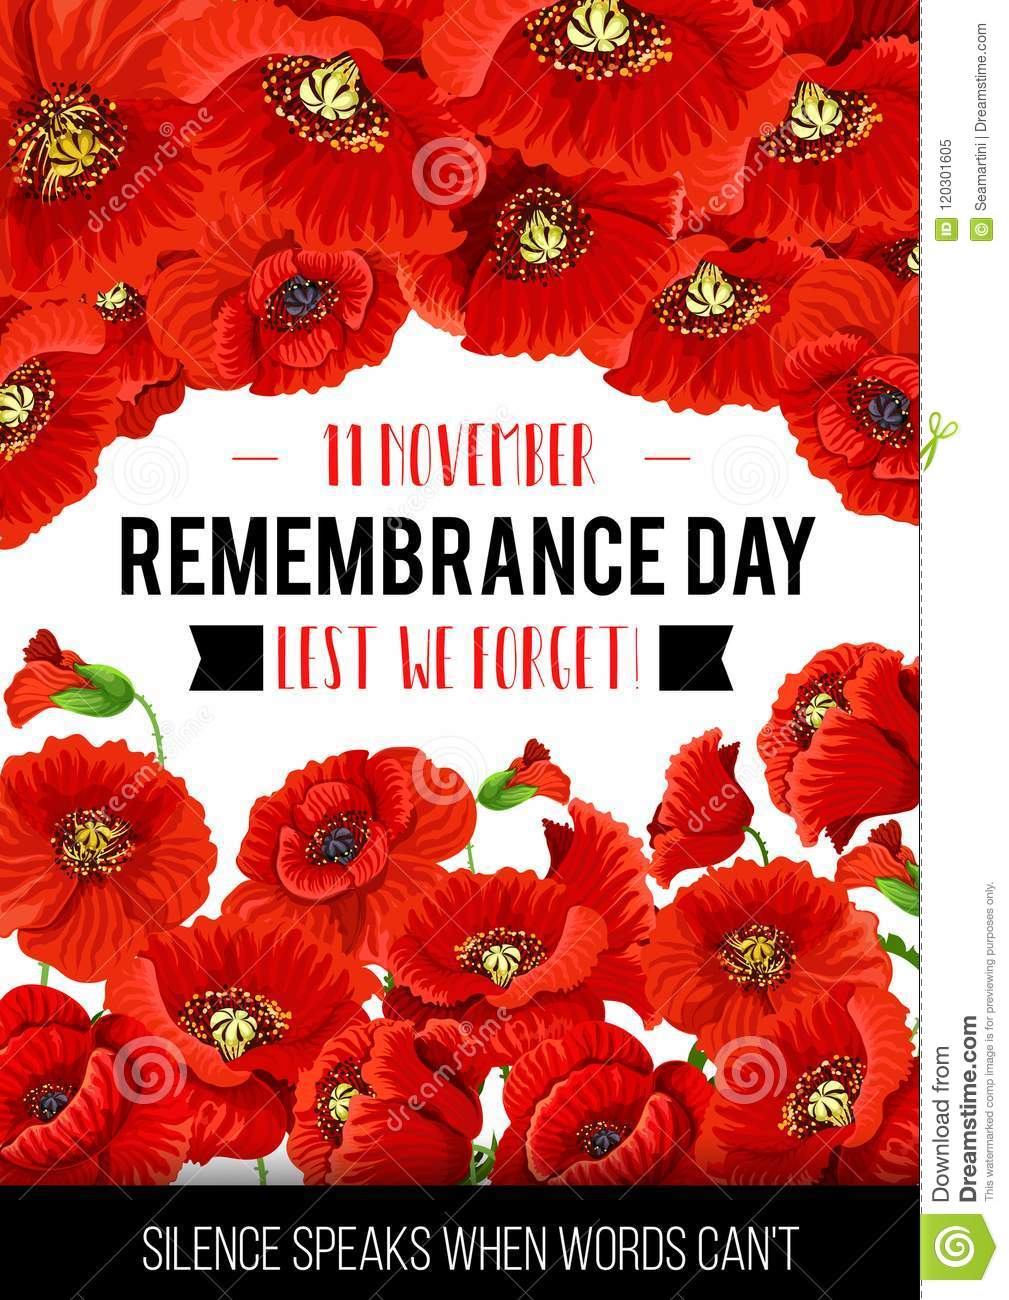 Vector 11 november remembrance day poppy card stock vector remembrance day greeting card of poppy flowers and silence speaks words quote for 11 november lest we forget commonwealth national commemoration mightylinksfo